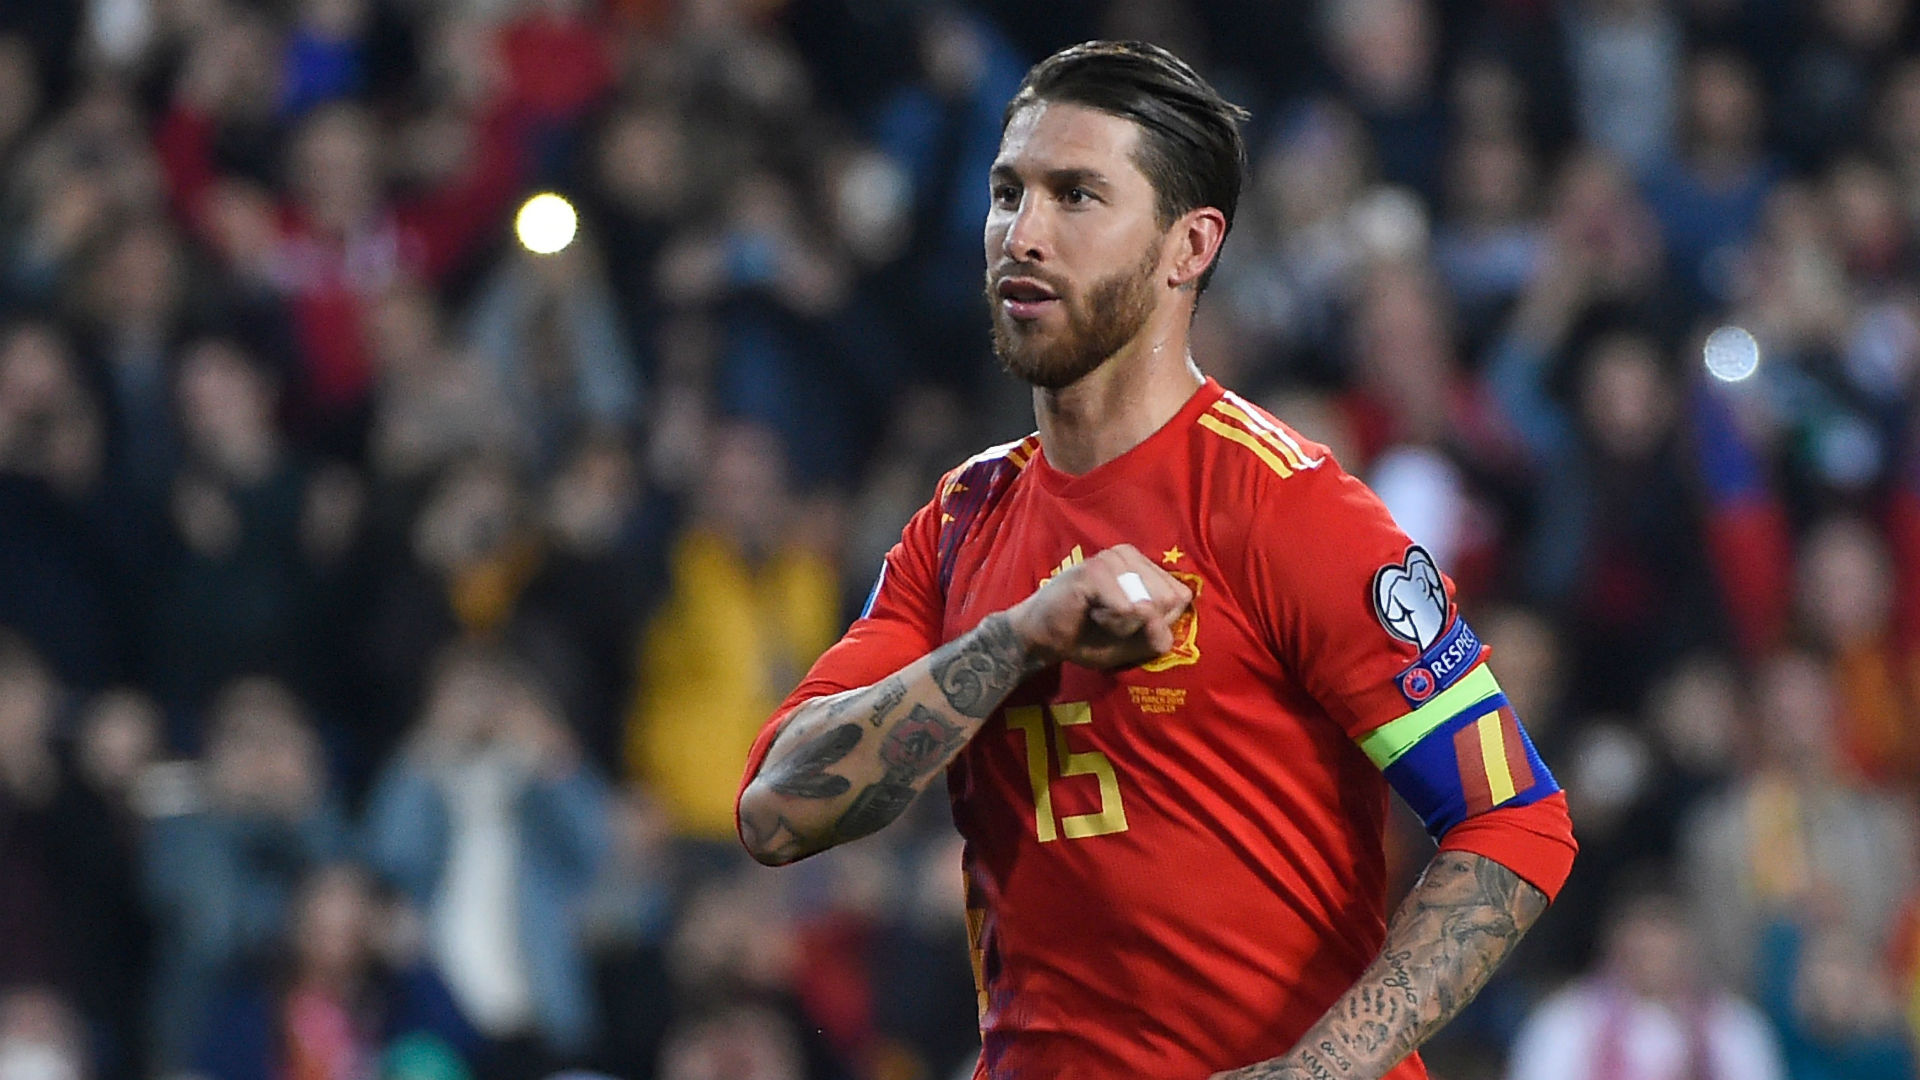 Real Madrid: Fans praise Sergio Ramos after breaking Spain's all-time appearance record - Bóng Đá